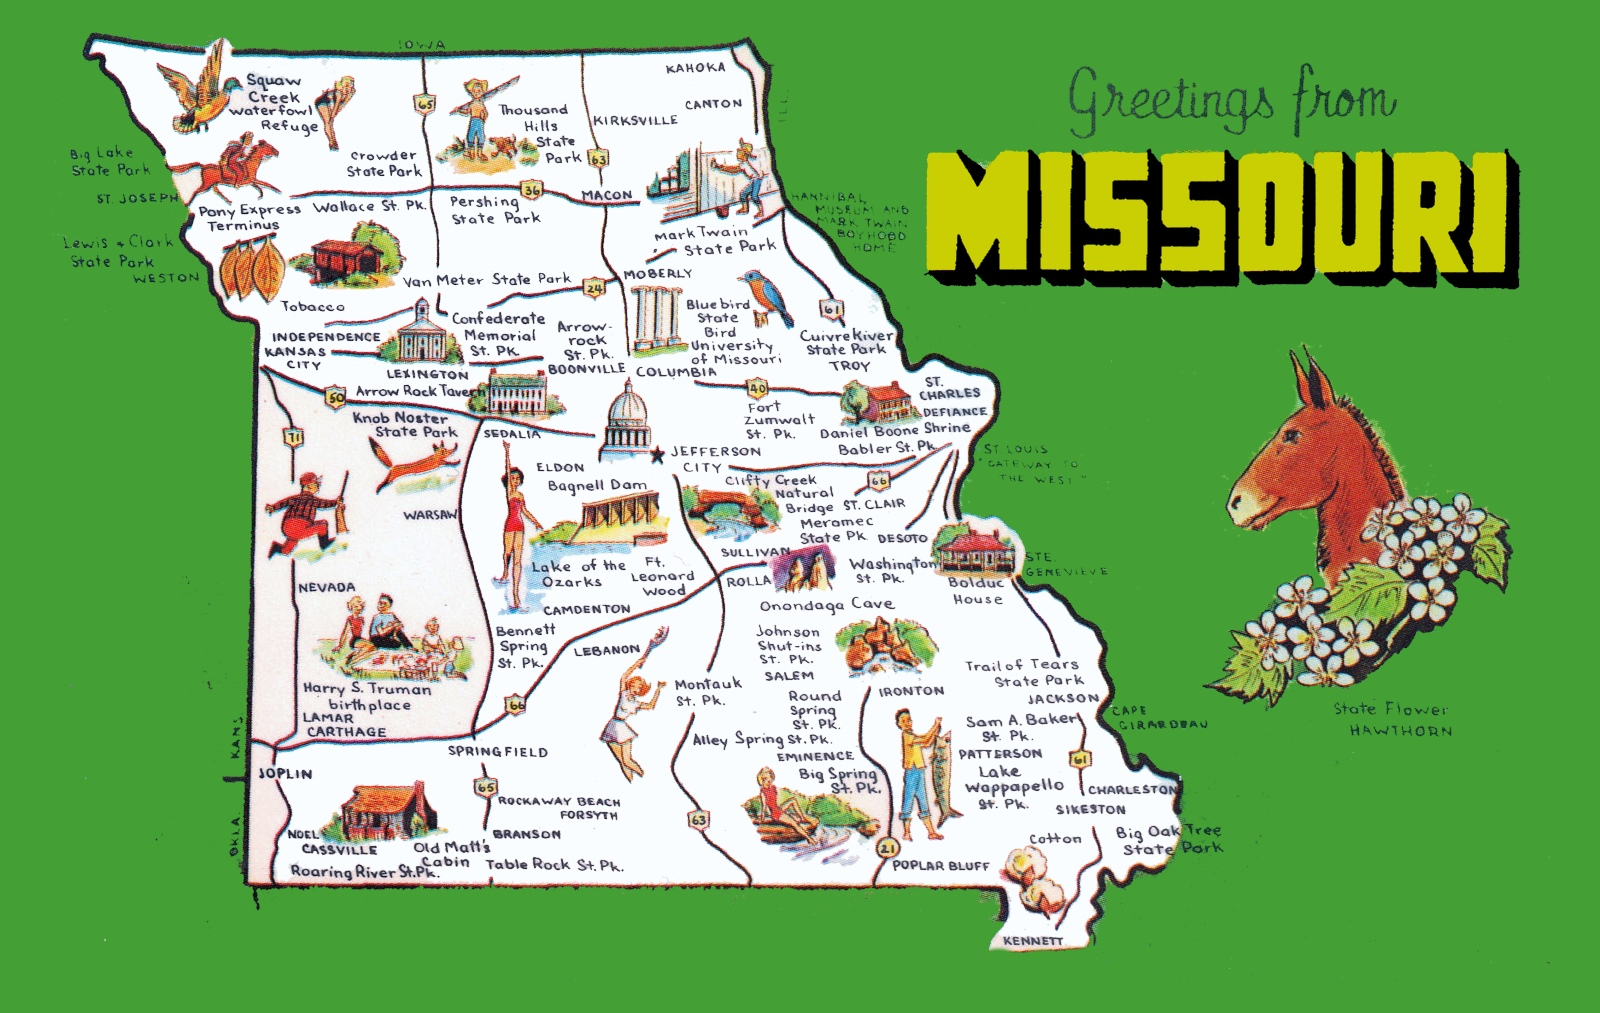 Pictorial travel map of Missouri on california map highways, buenos aires points of interest, california map things to do, california map streets, turkey points of interest, california map directions, california map campgrounds, egypt points of interest, india points of interest, mexico points of interest, morocco points of interest, california map poi, highway 101 points of interest, kenya points of interest, washington dc points of interest, san luis obispo points of interest, dubai points of interest, usa points of interest, new england points of interest, tokyo points of interest,